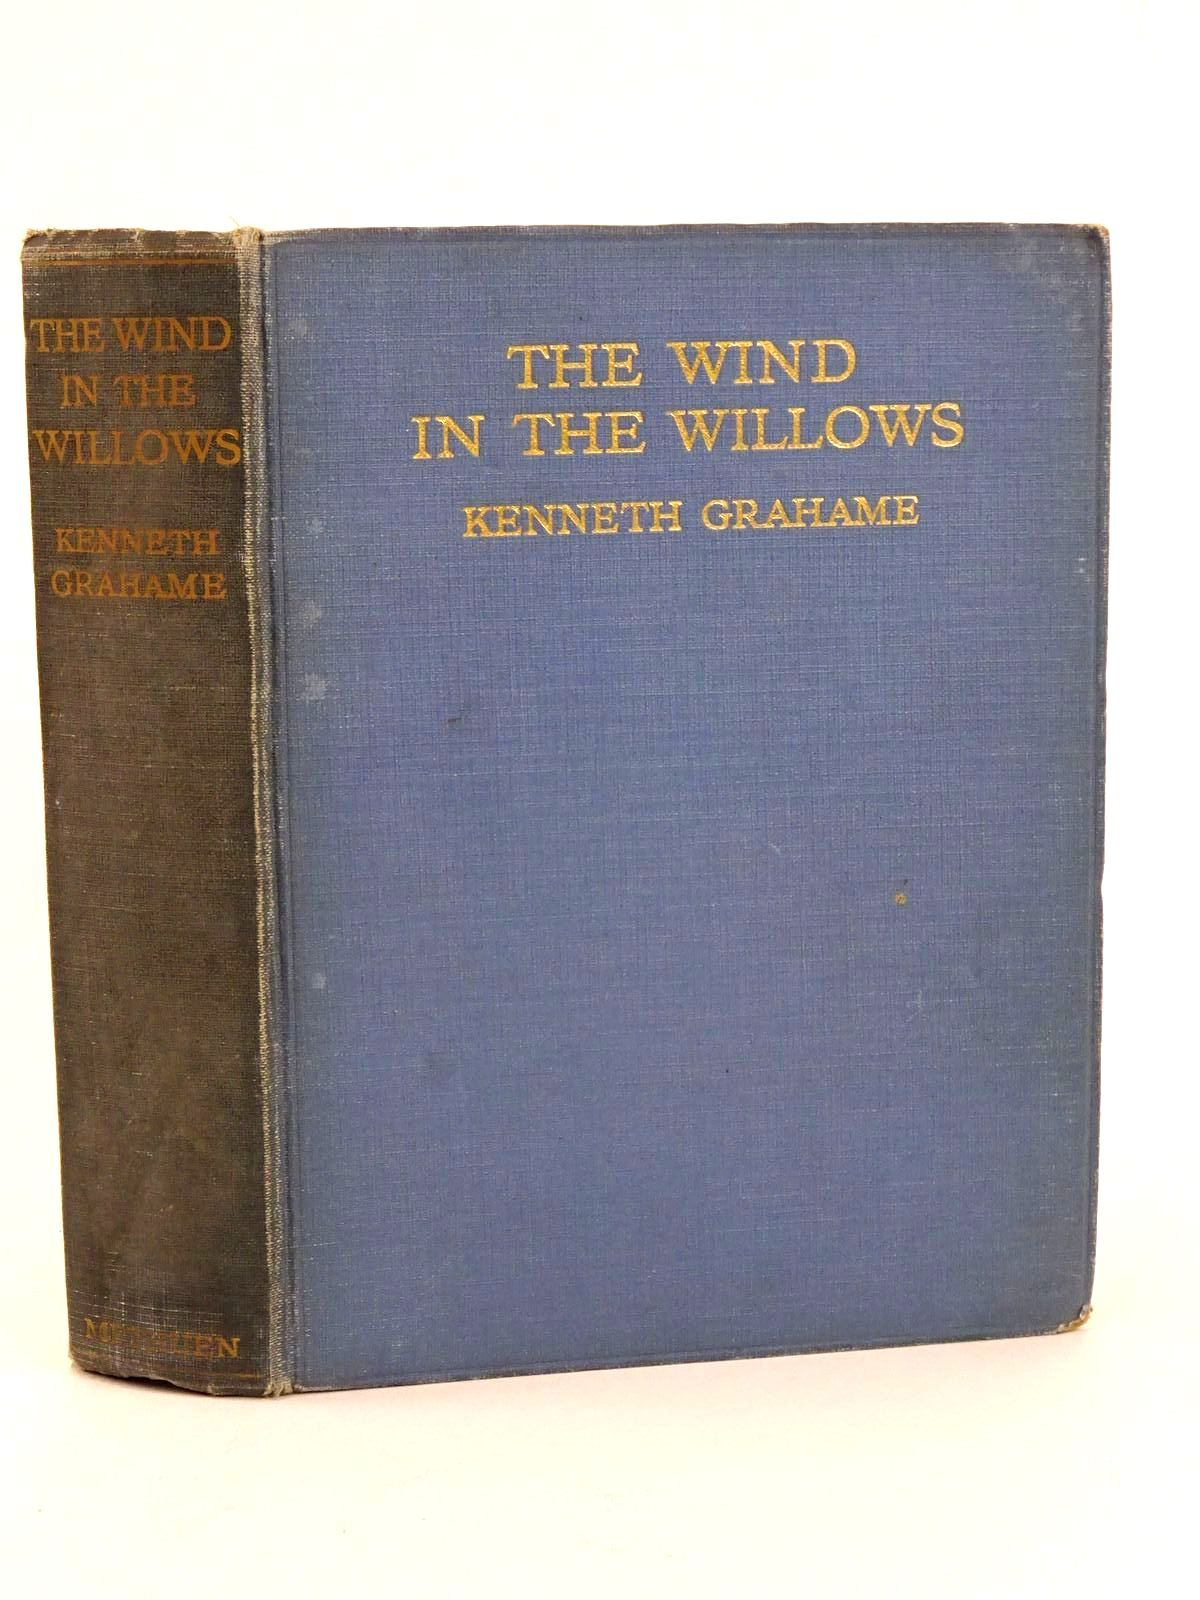 Photo of THE WIND IN THE WILLOWS written by Grahame, Kenneth illustrated by Payne, Wyndham published by Methuen & Co. Ltd. (STOCK CODE: 1318320)  for sale by Stella & Rose's Books